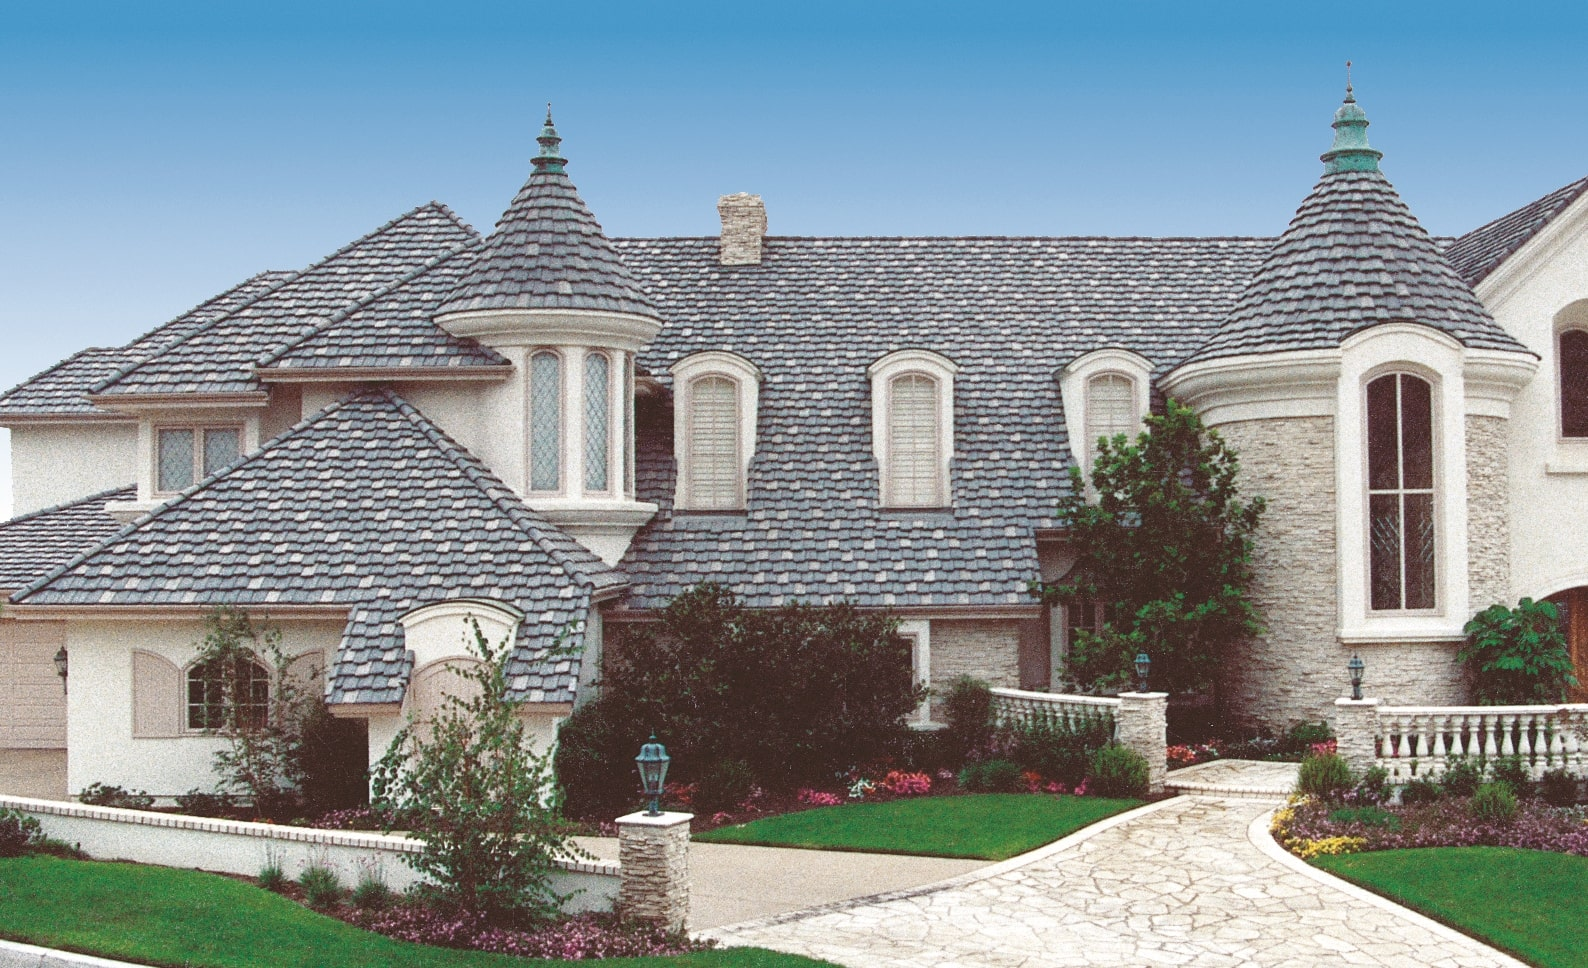 Top Line Roofing Images